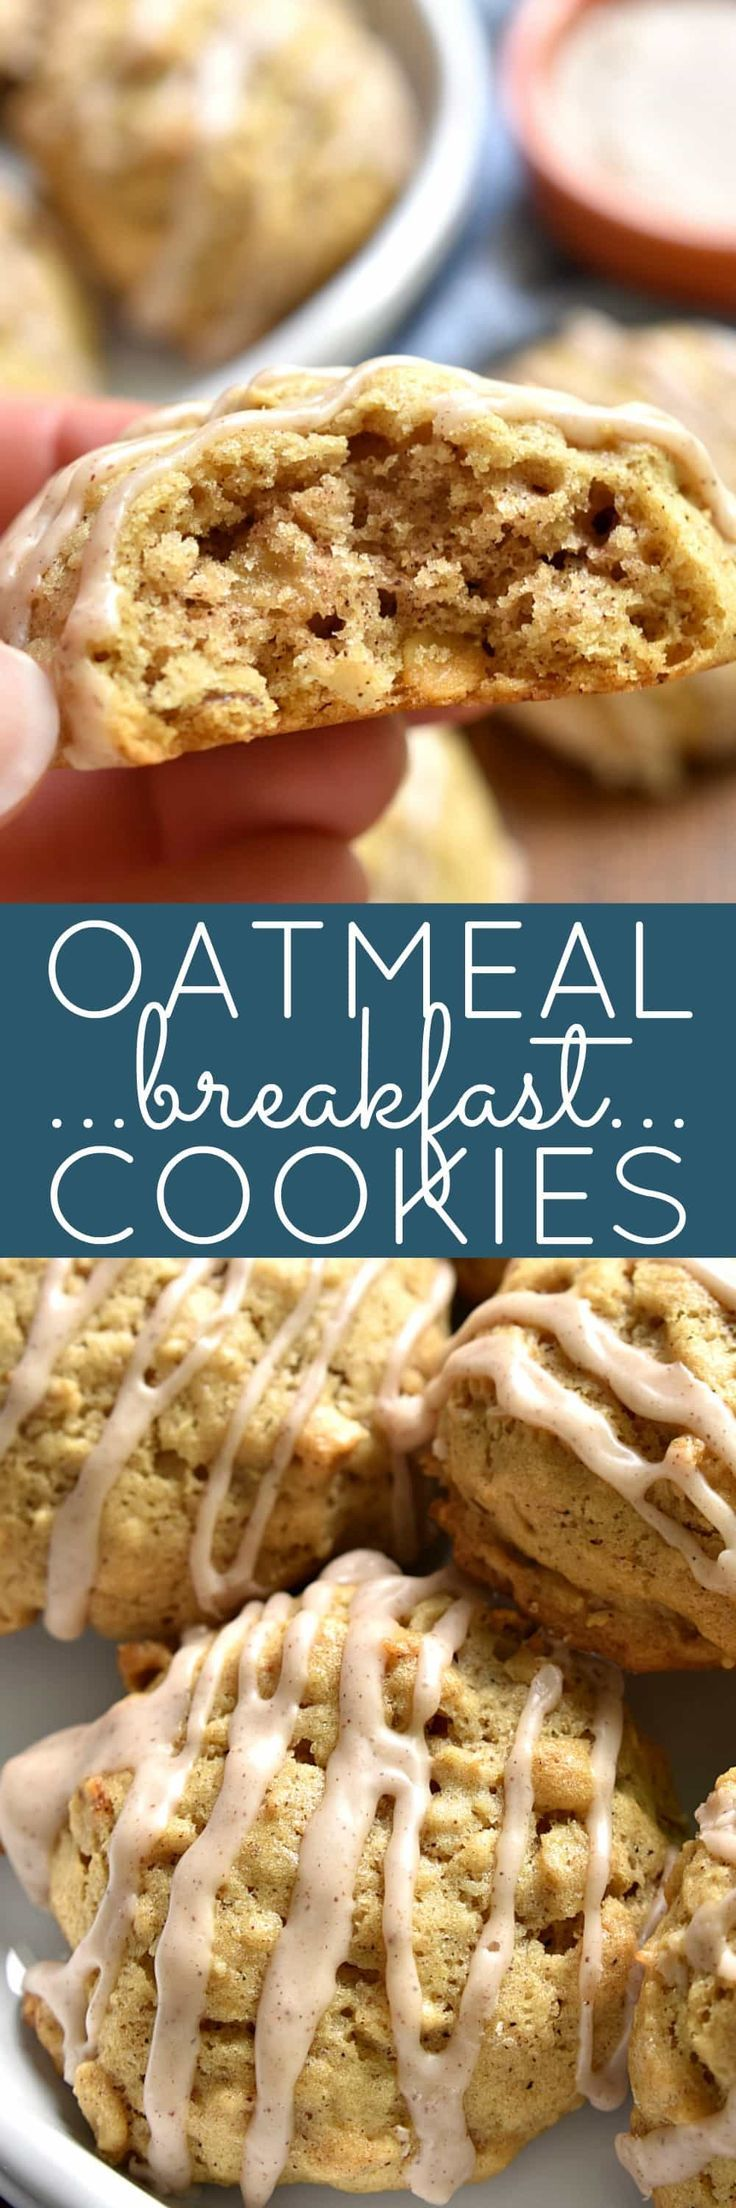 These Oatmeal Breakfast Cookies are packed with flavor and perfect for busy mornings! Topped with a sweet cinnamon glaze, they're every kid's dream….and just in time for back to school!